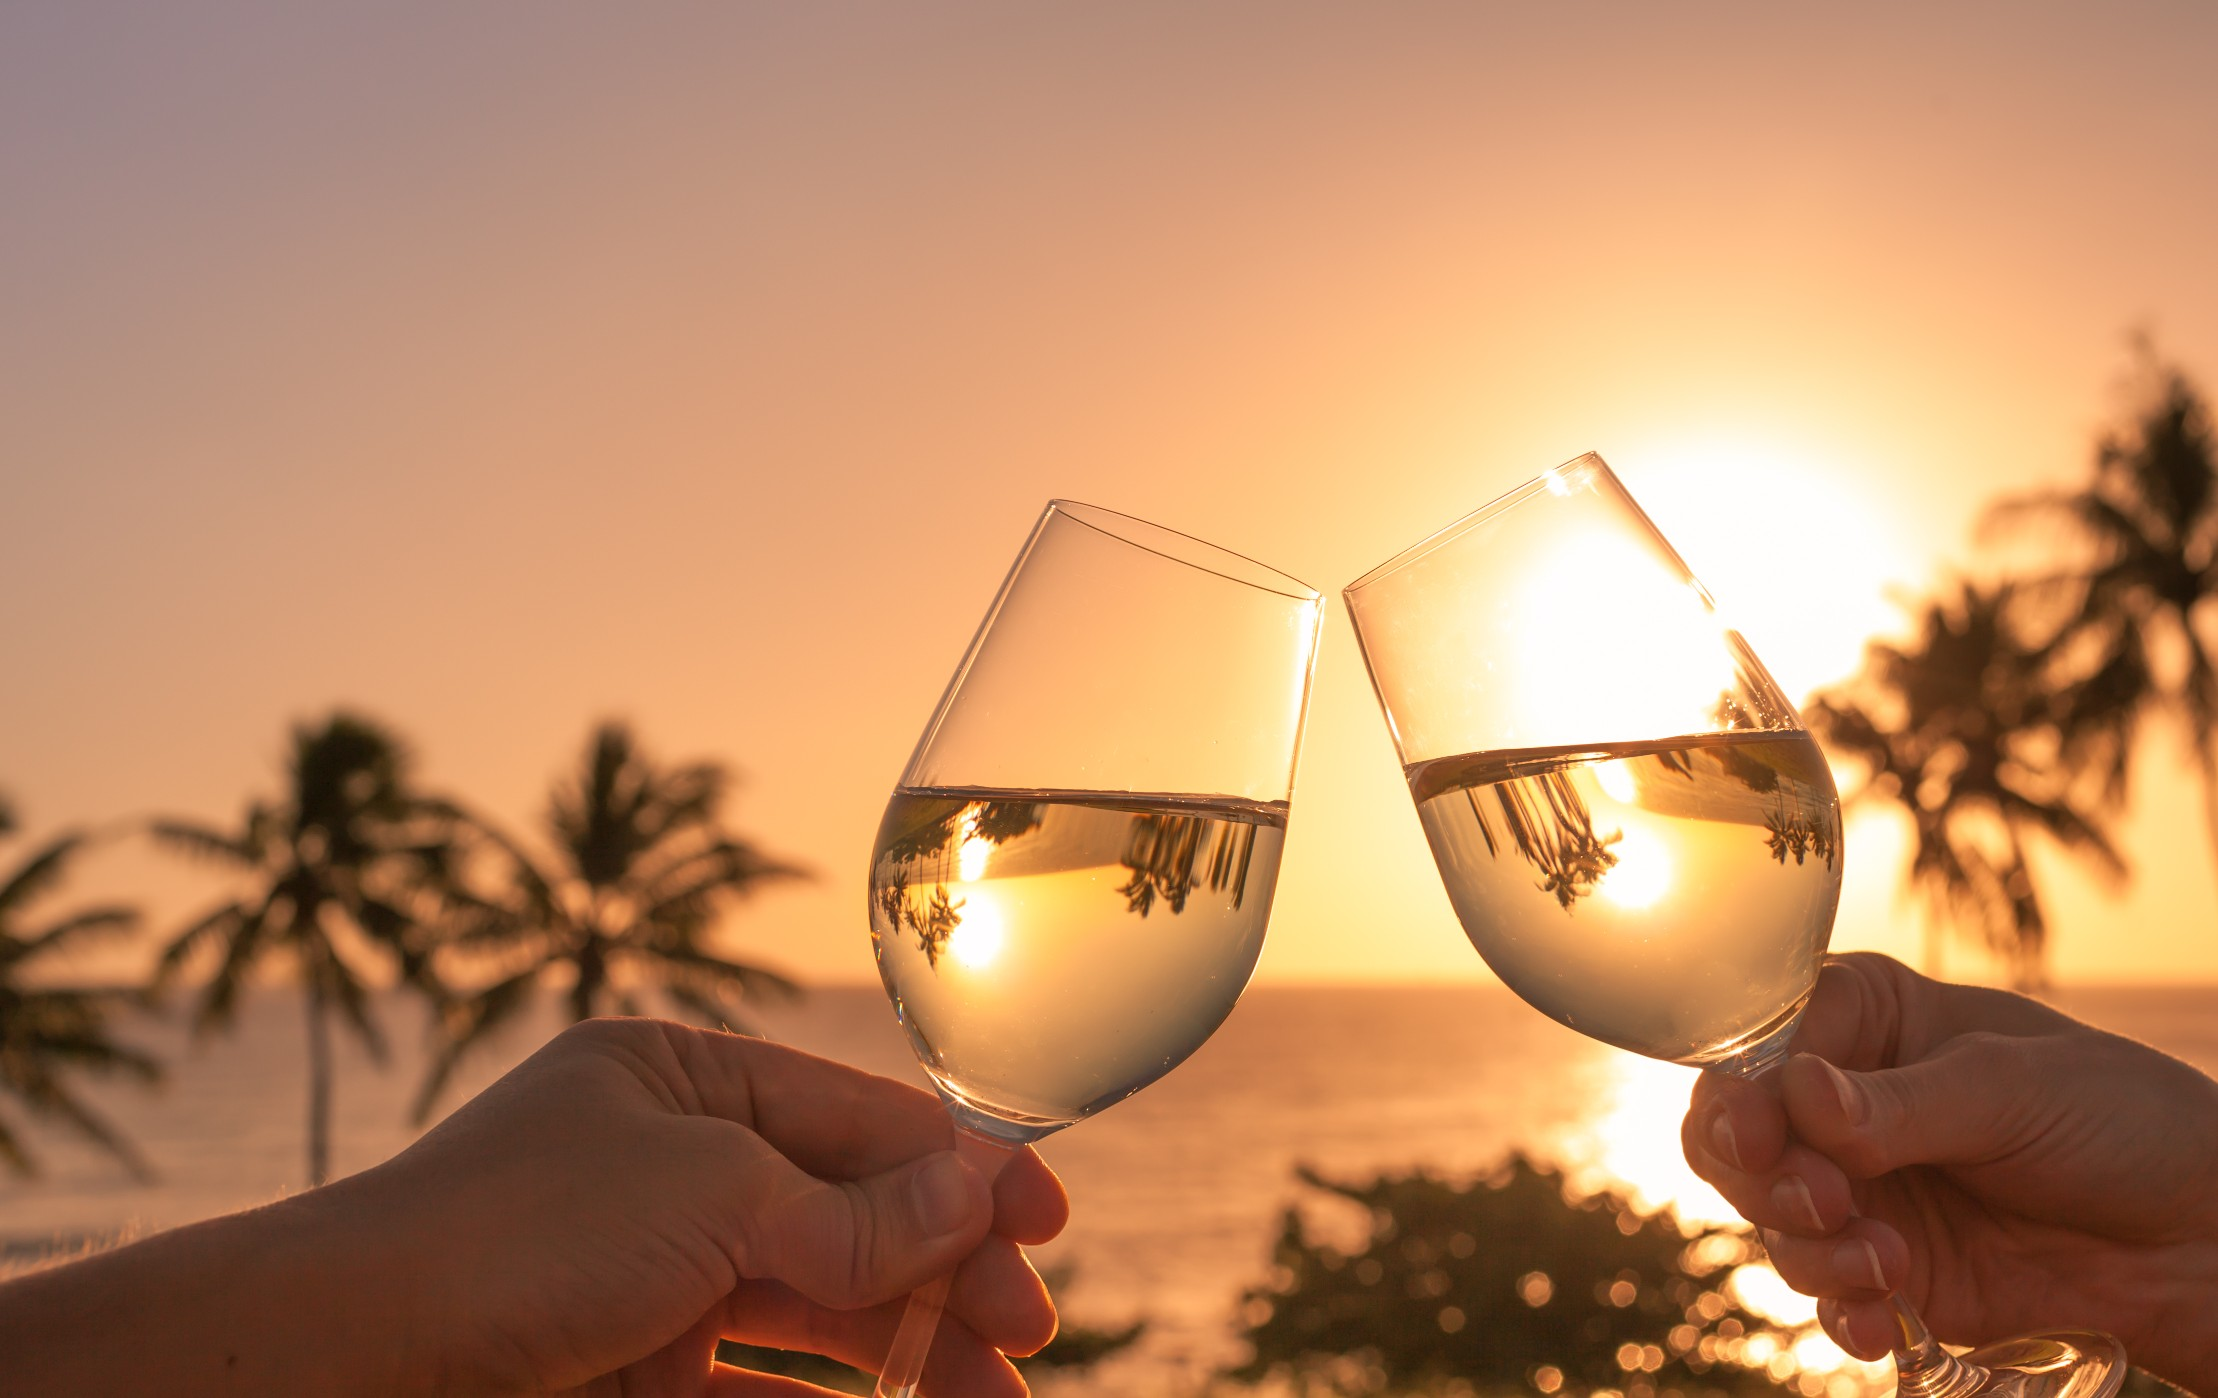 Glasses clinking with a view of the sun setting over the sea in the Florida Keys